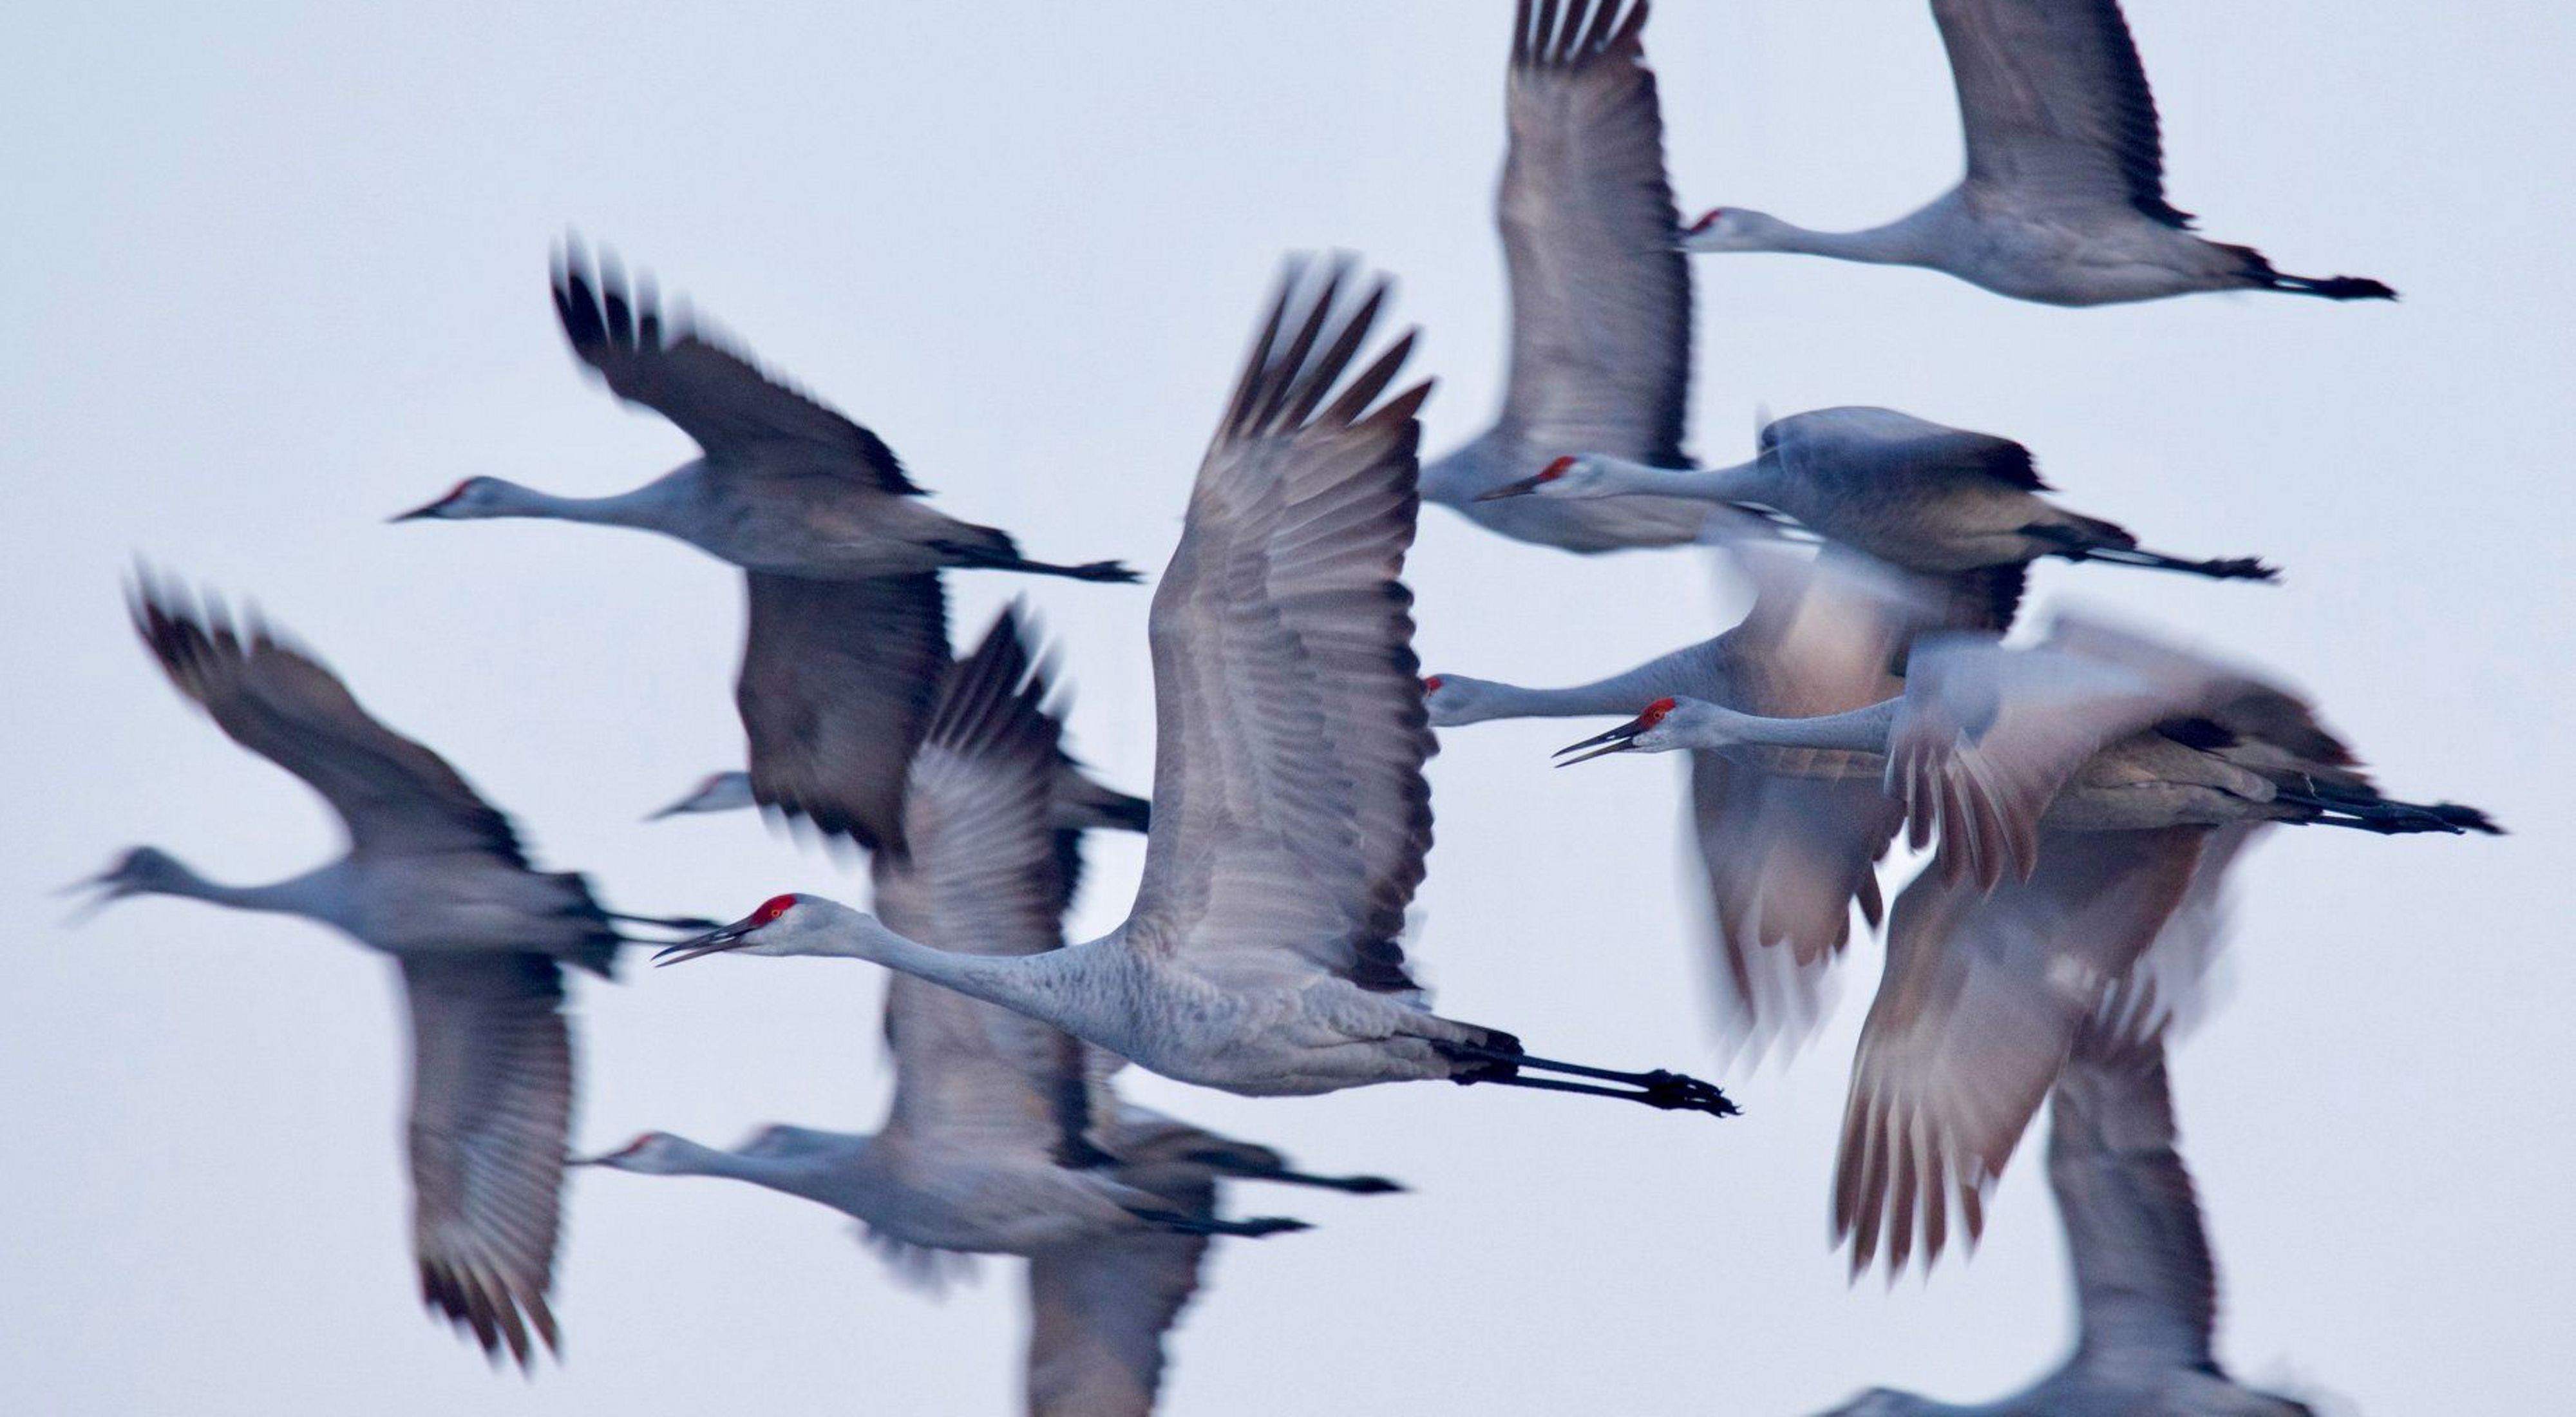 Nebraska's Grand Island during the sandhill crane migration. Honorable Mention in the 2019 Staff Photo Contest.